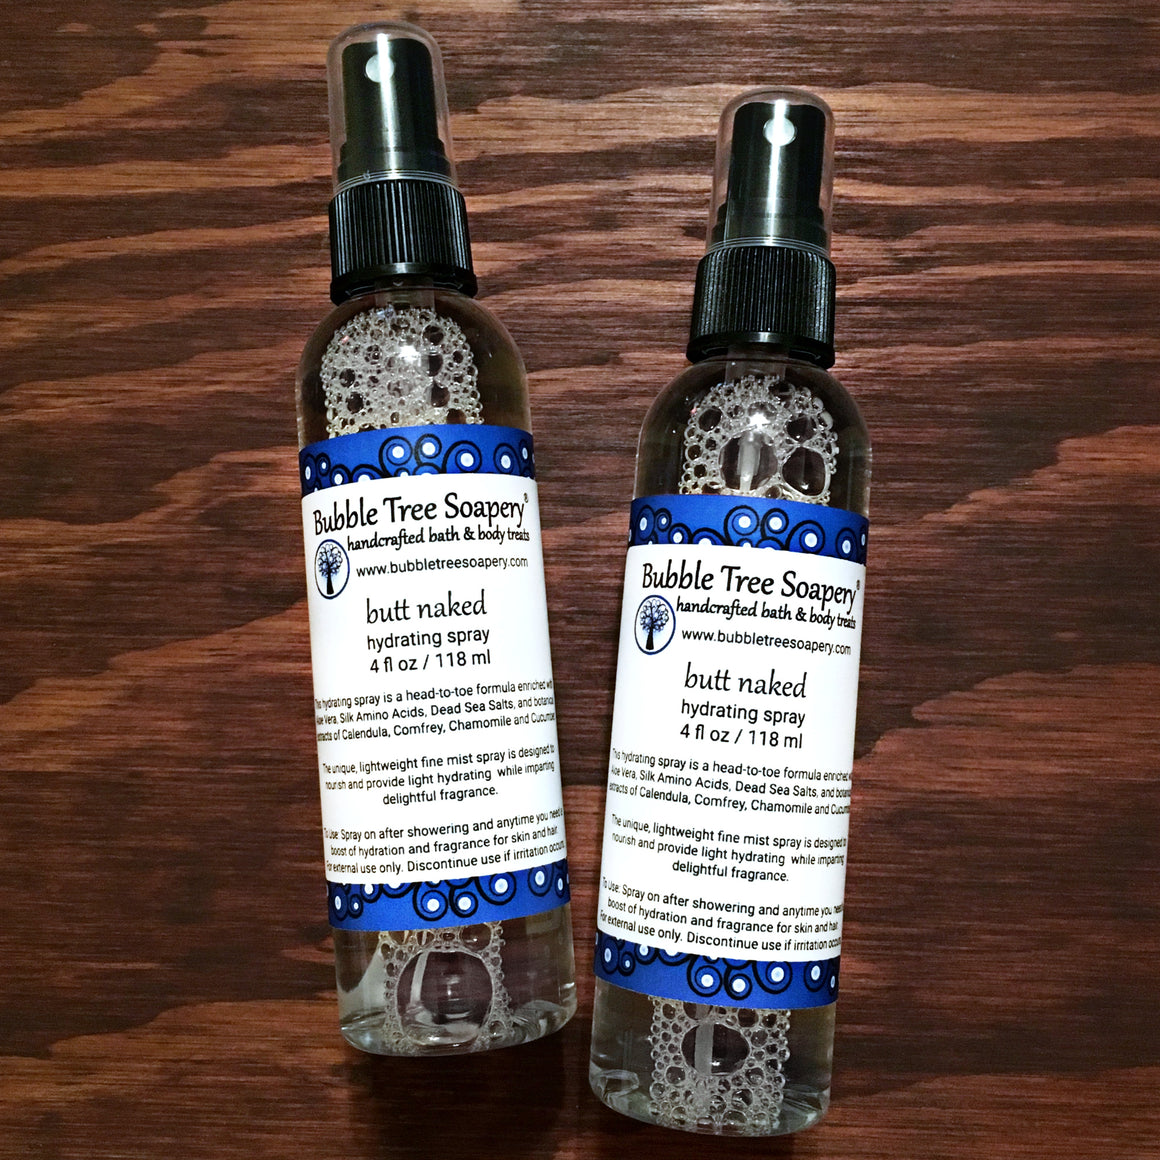 Butt Naked Hydrating Body Spray | Bubble Tree Soapery